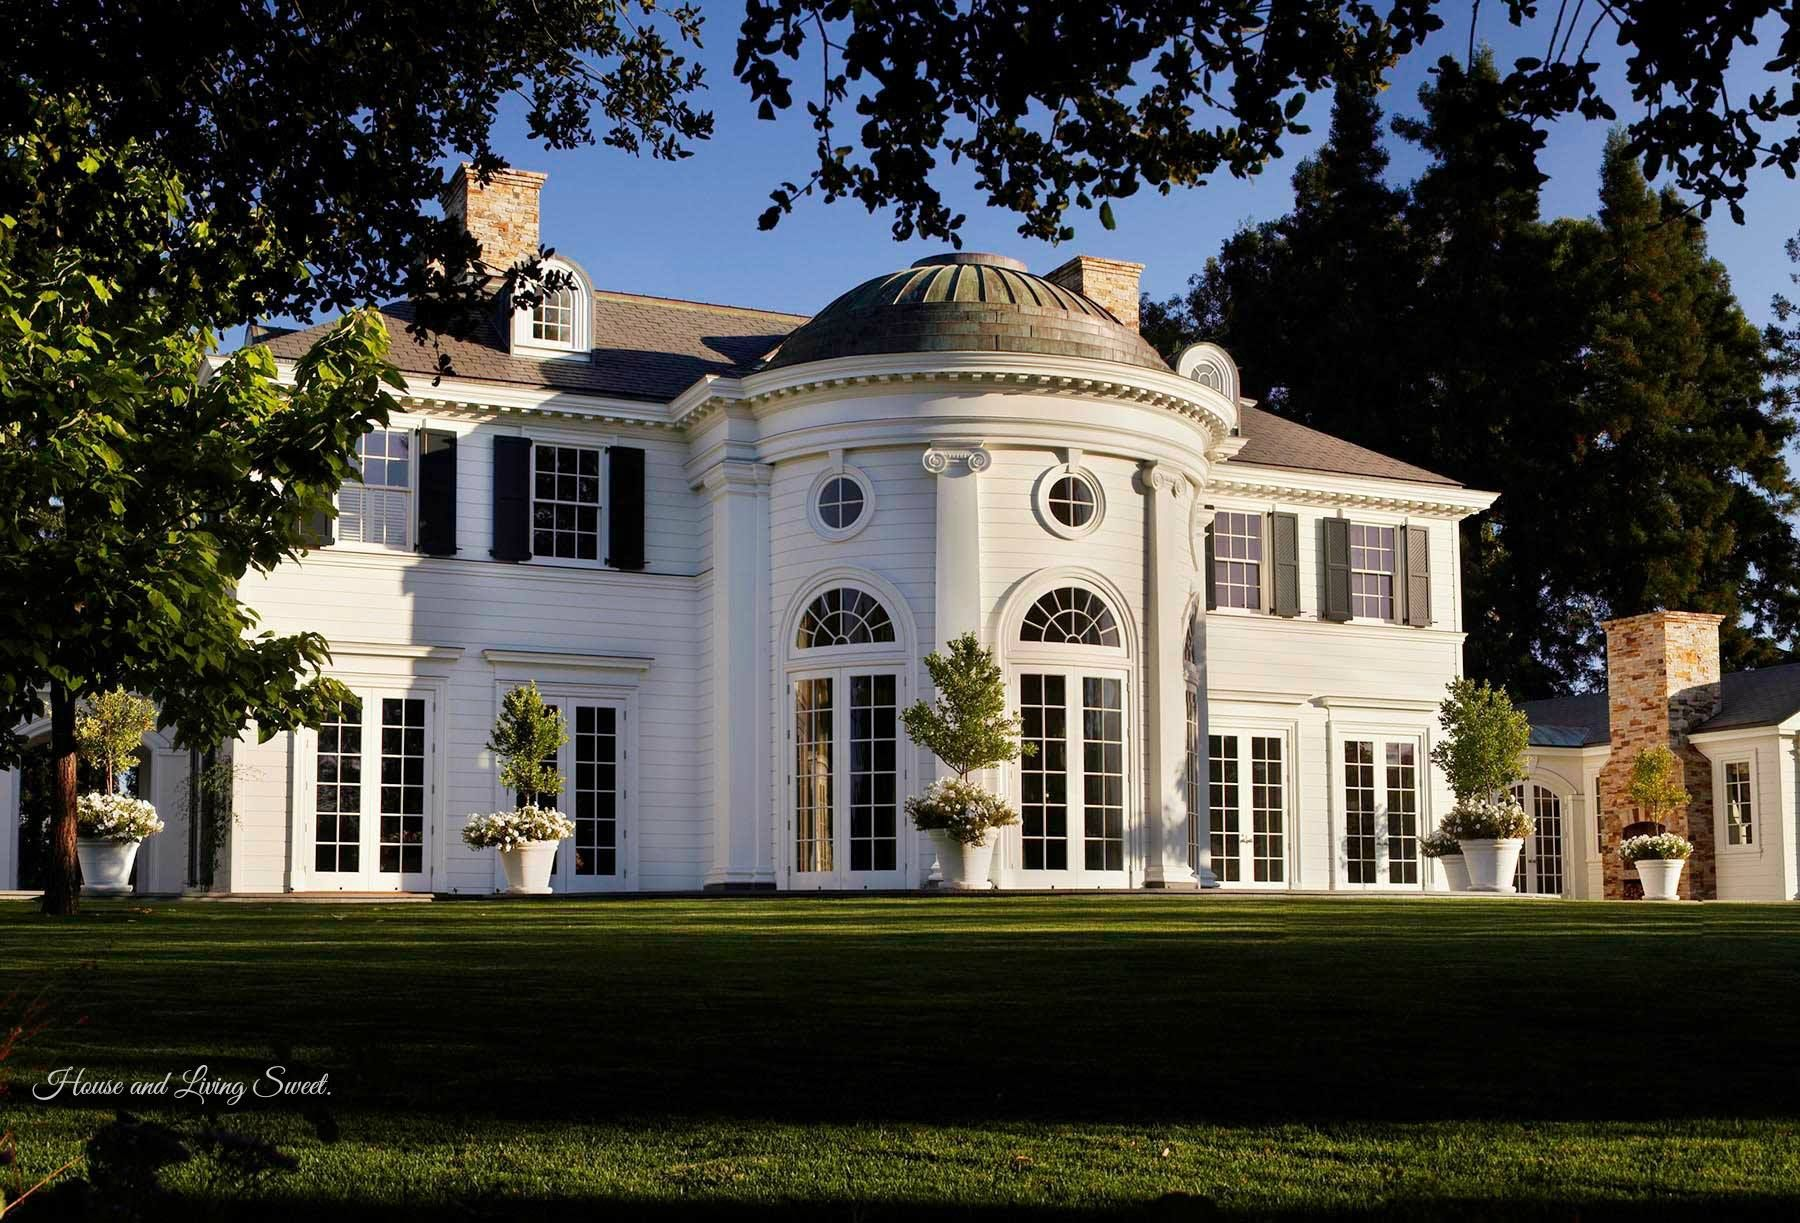 agreeable beautiful homes in california. Mountain Home Road  Woodside California An American Estate with Jeffersonian architecture Architecture